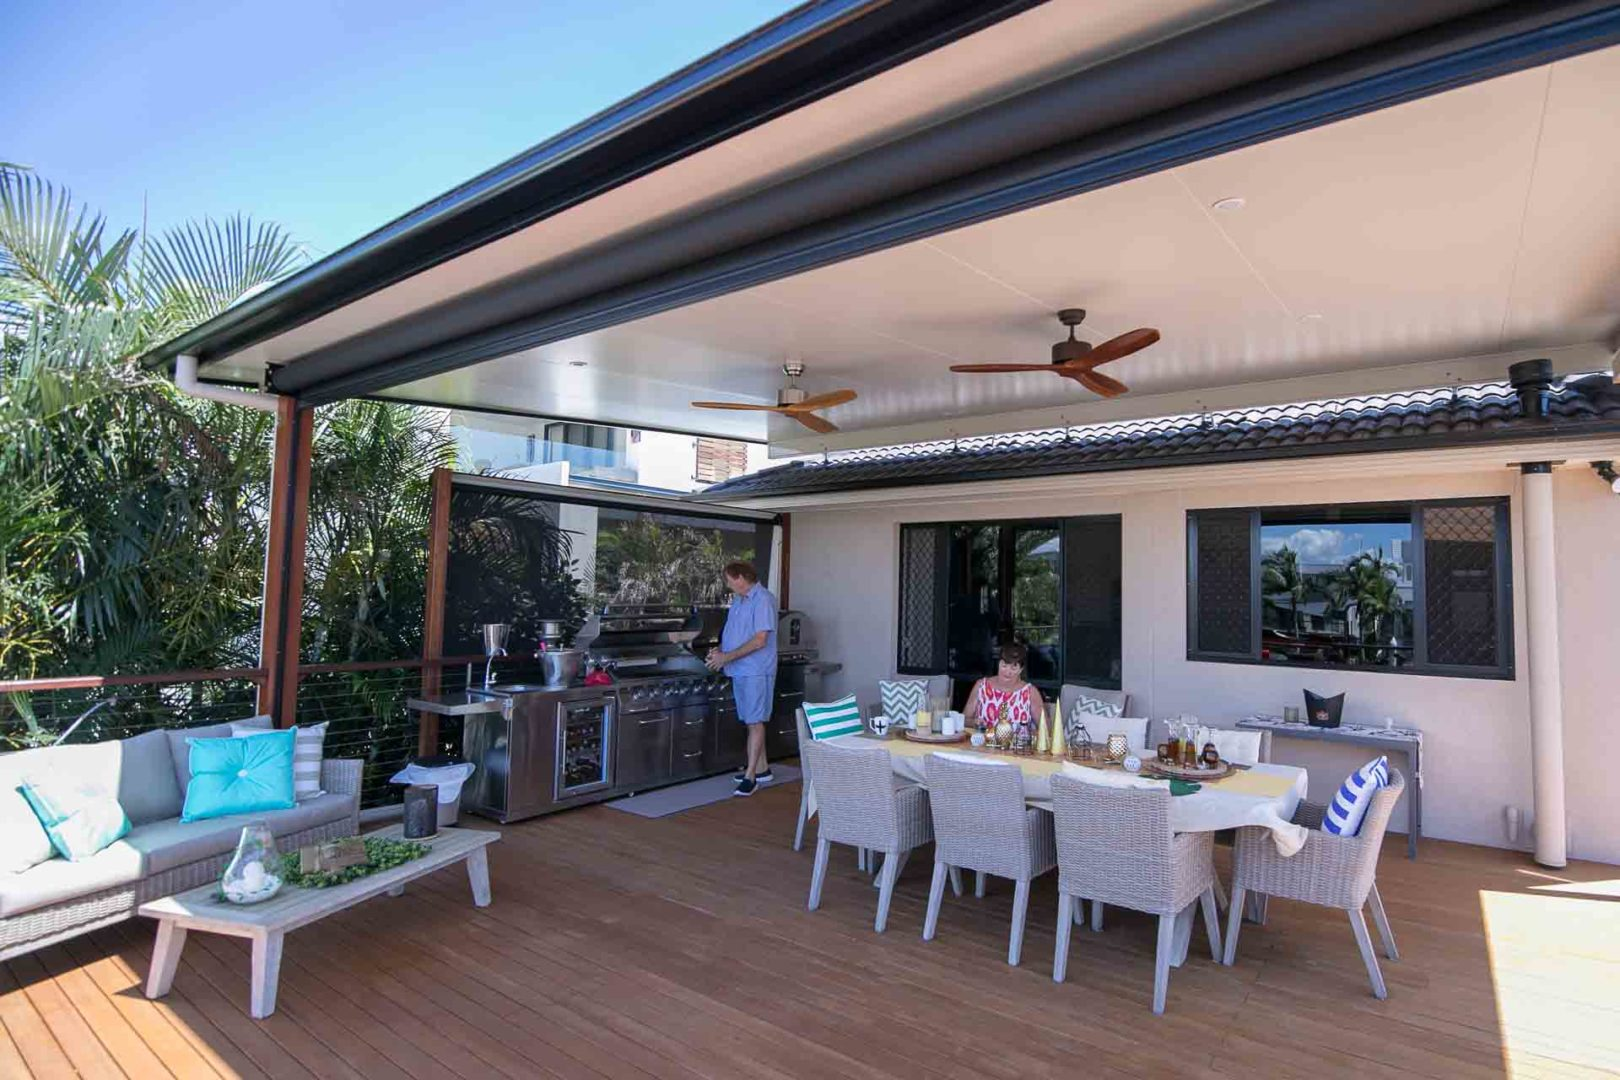 How You Can Earn More From Your Rental Property with a Verandah - Entertain on a verandah by Australian Outdoor Living, Australian Outdoor Living.